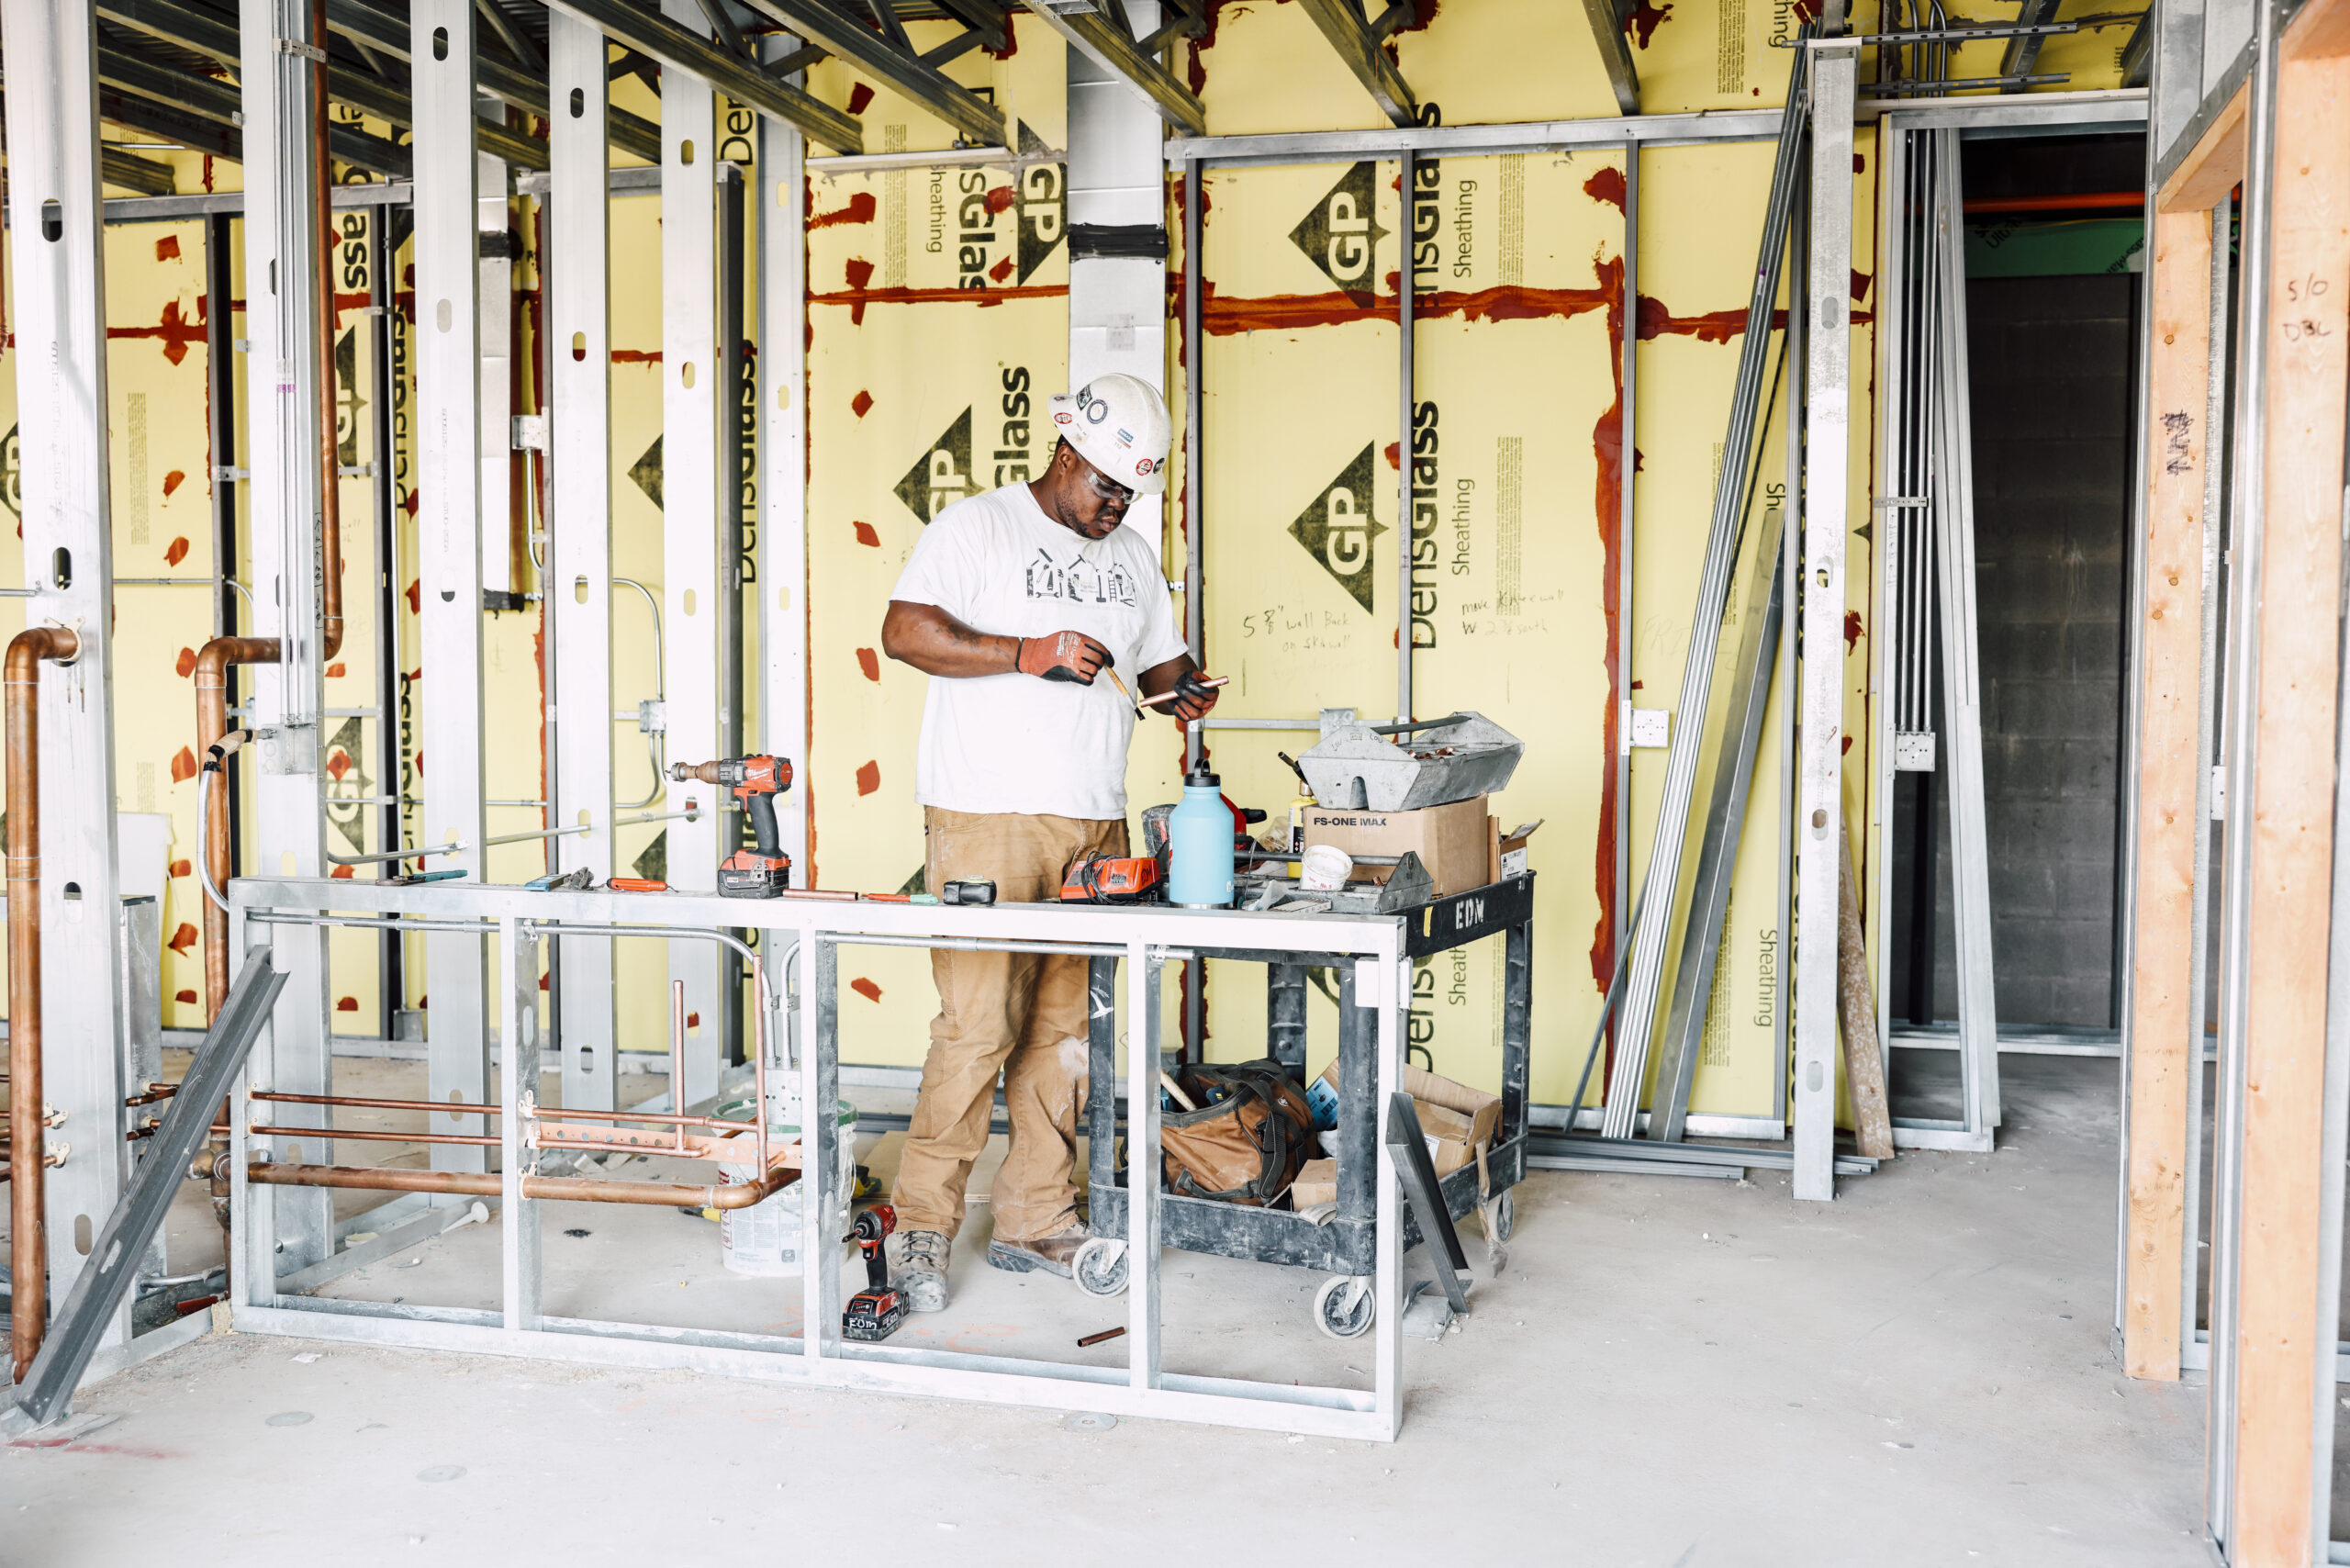 A man in a hard hat working at a construction site.